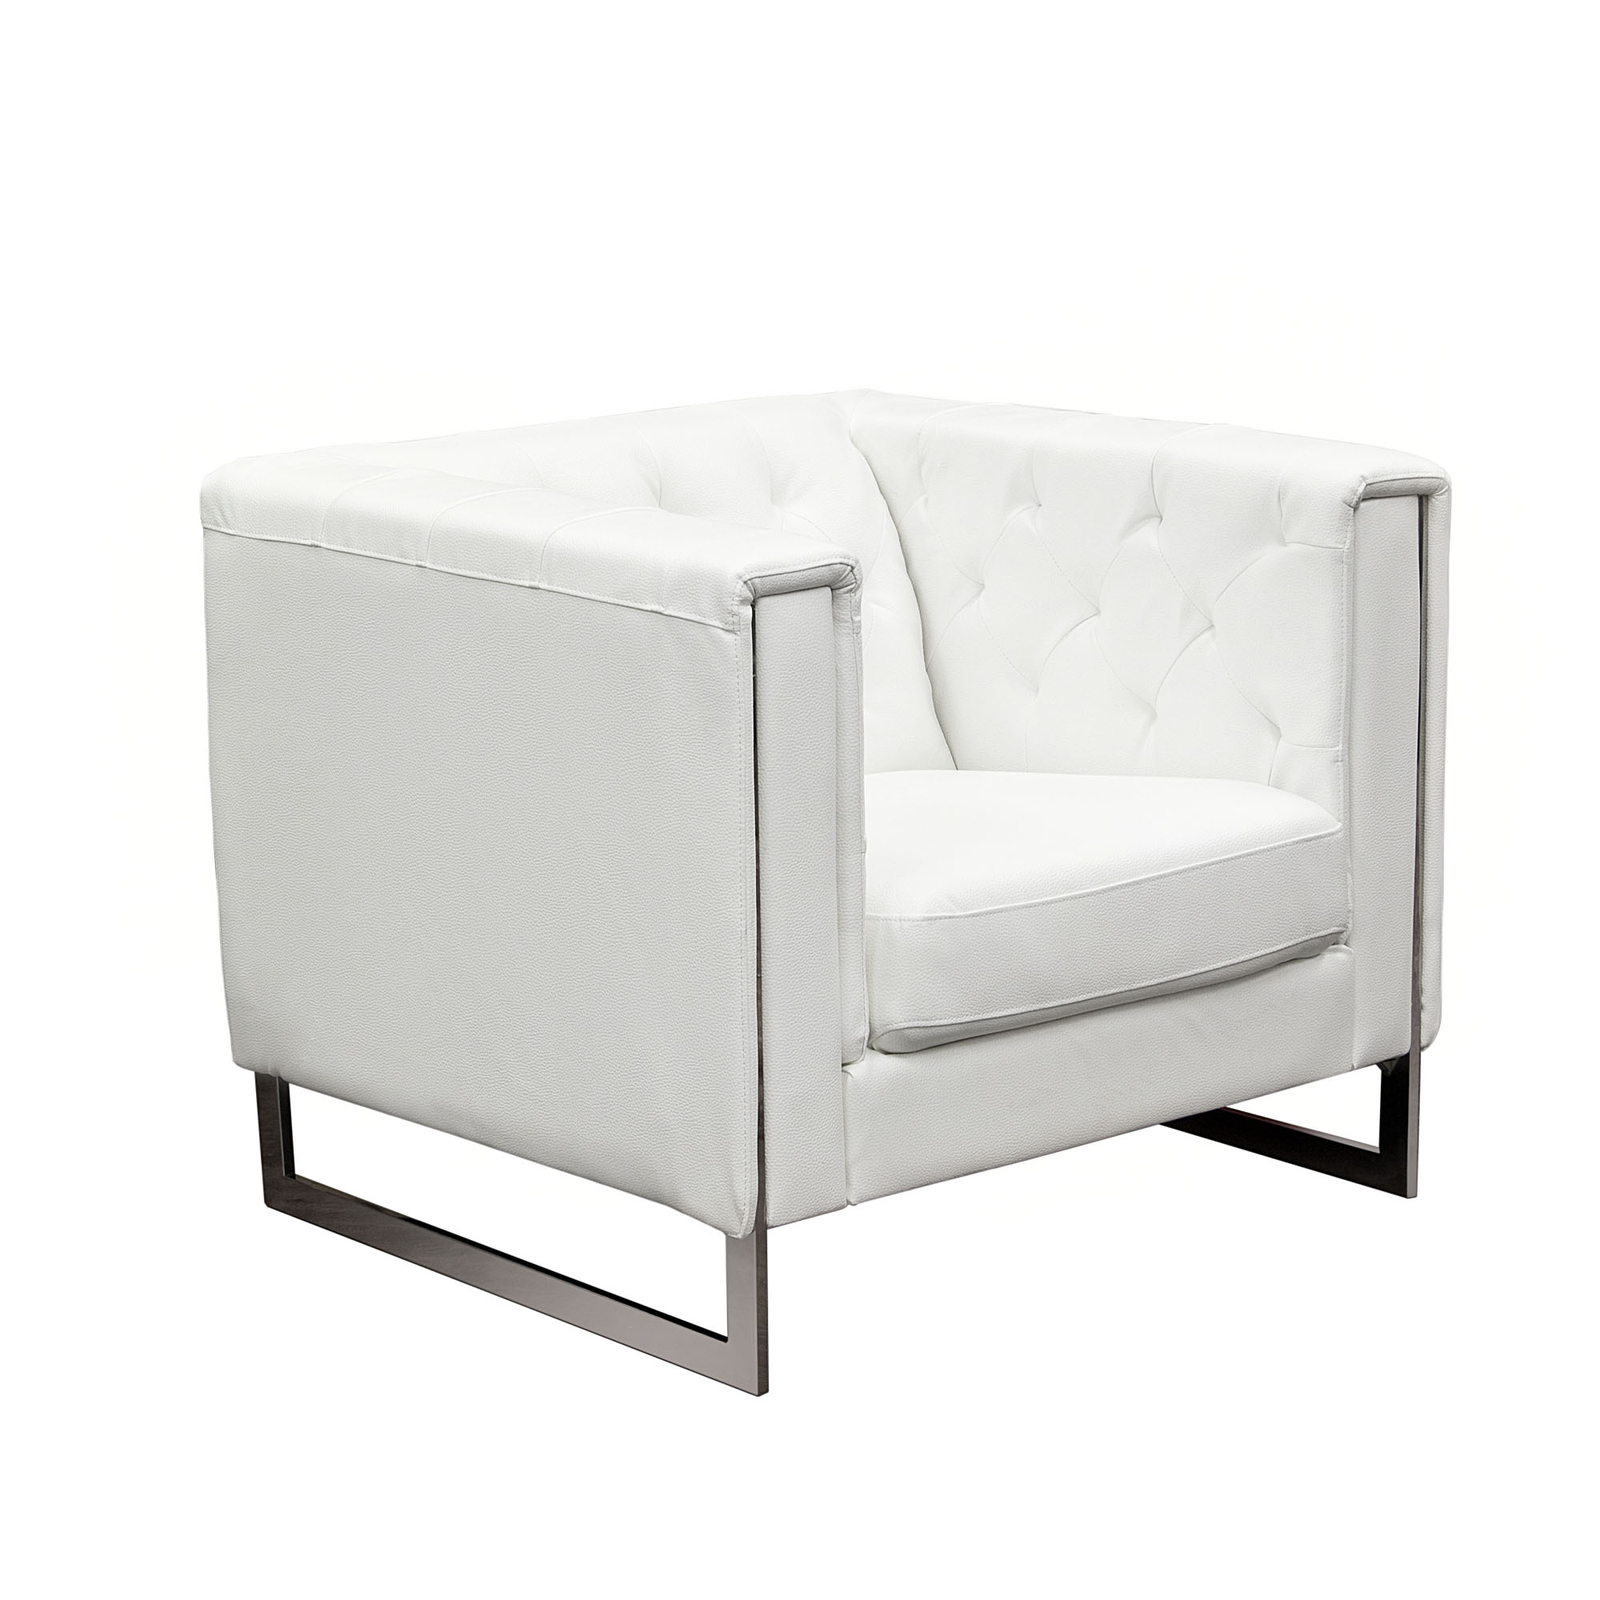 Admirable White Leather Accent Chair Ibusinesslaw Wood Chair Design Ideas Ibusinesslaworg